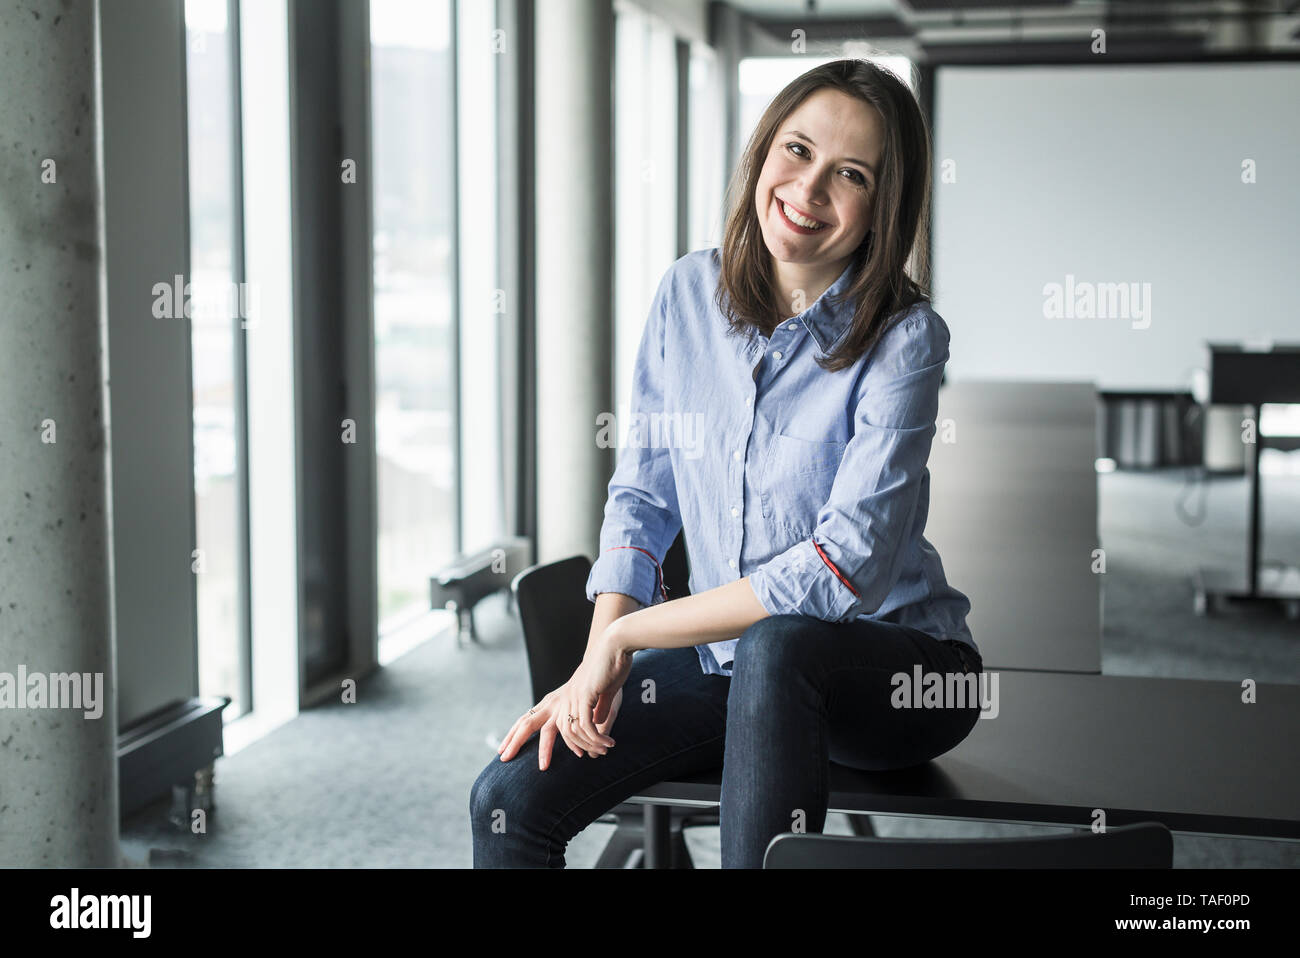 Portrait of smiling businesswoman sitting on conference table in office - Stock Image